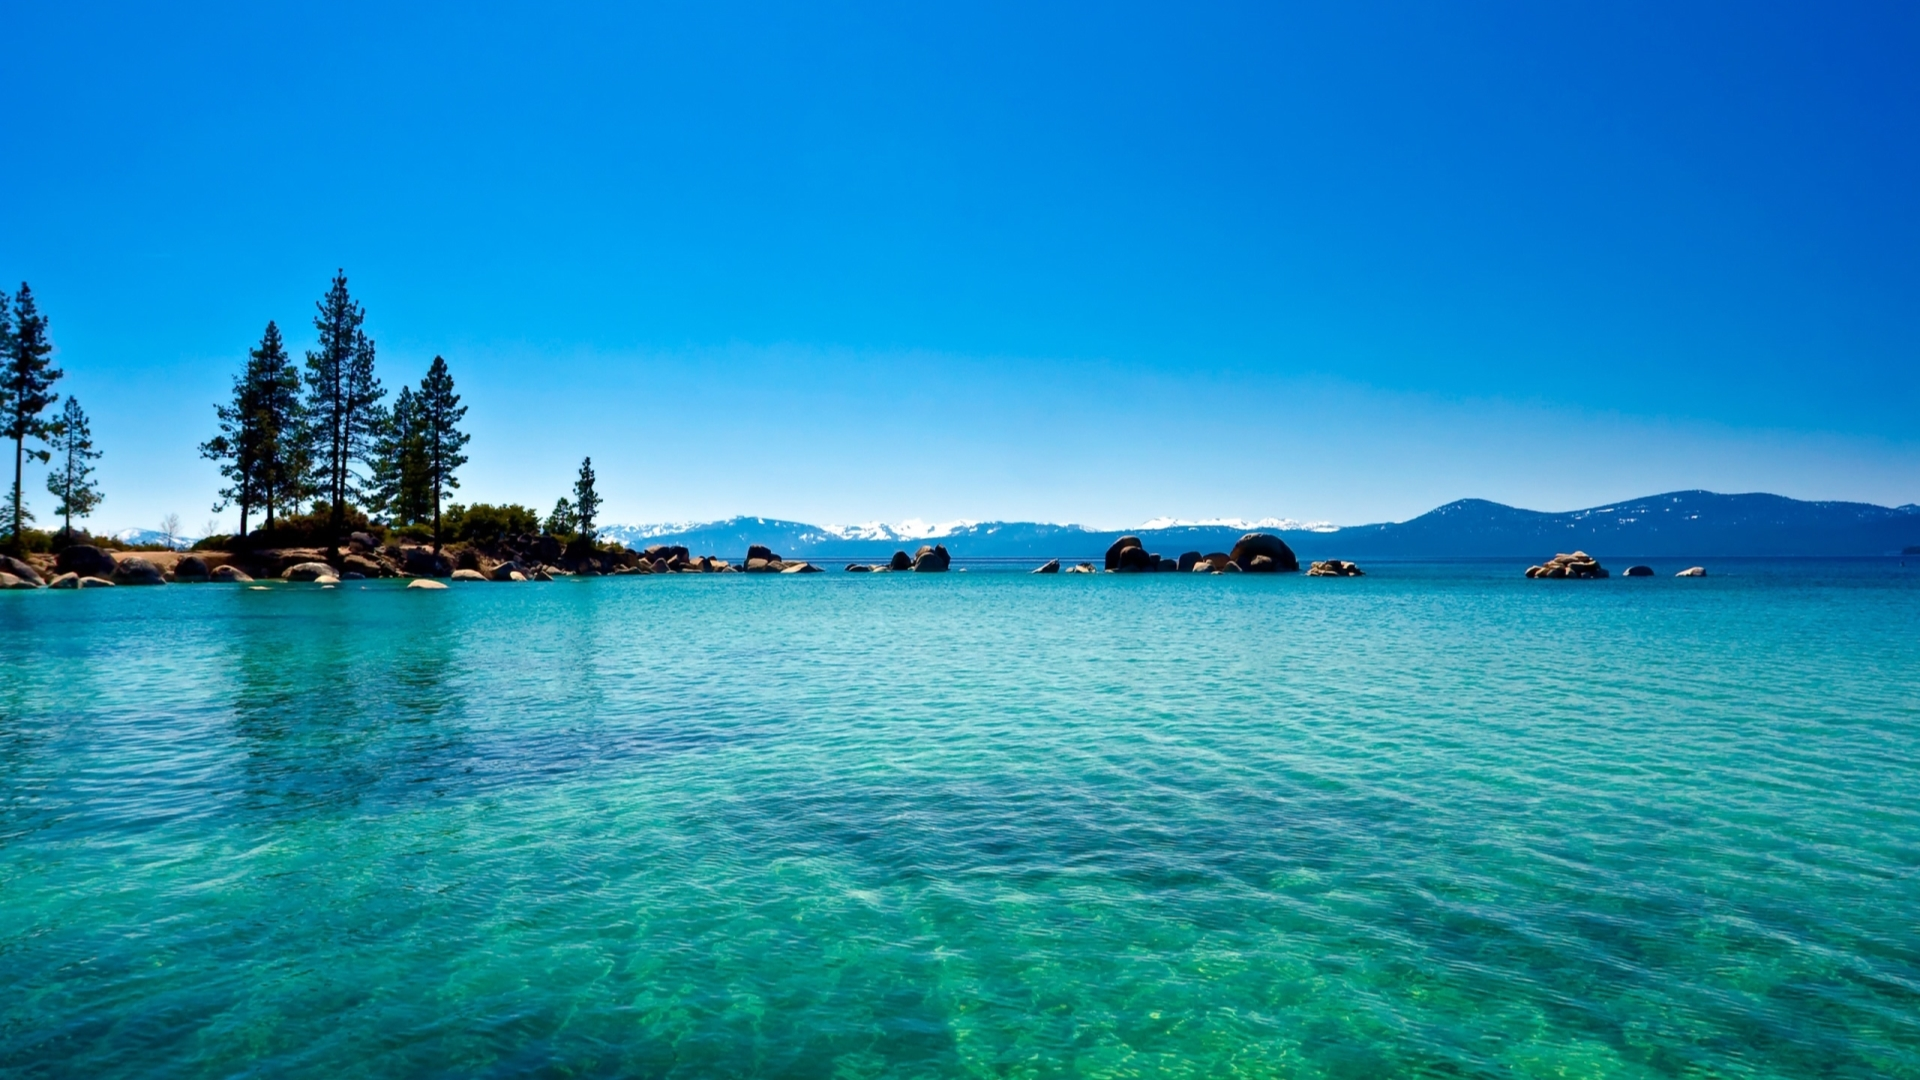 Imac Wallpaper Lake Tahoe Background 120799 Hd